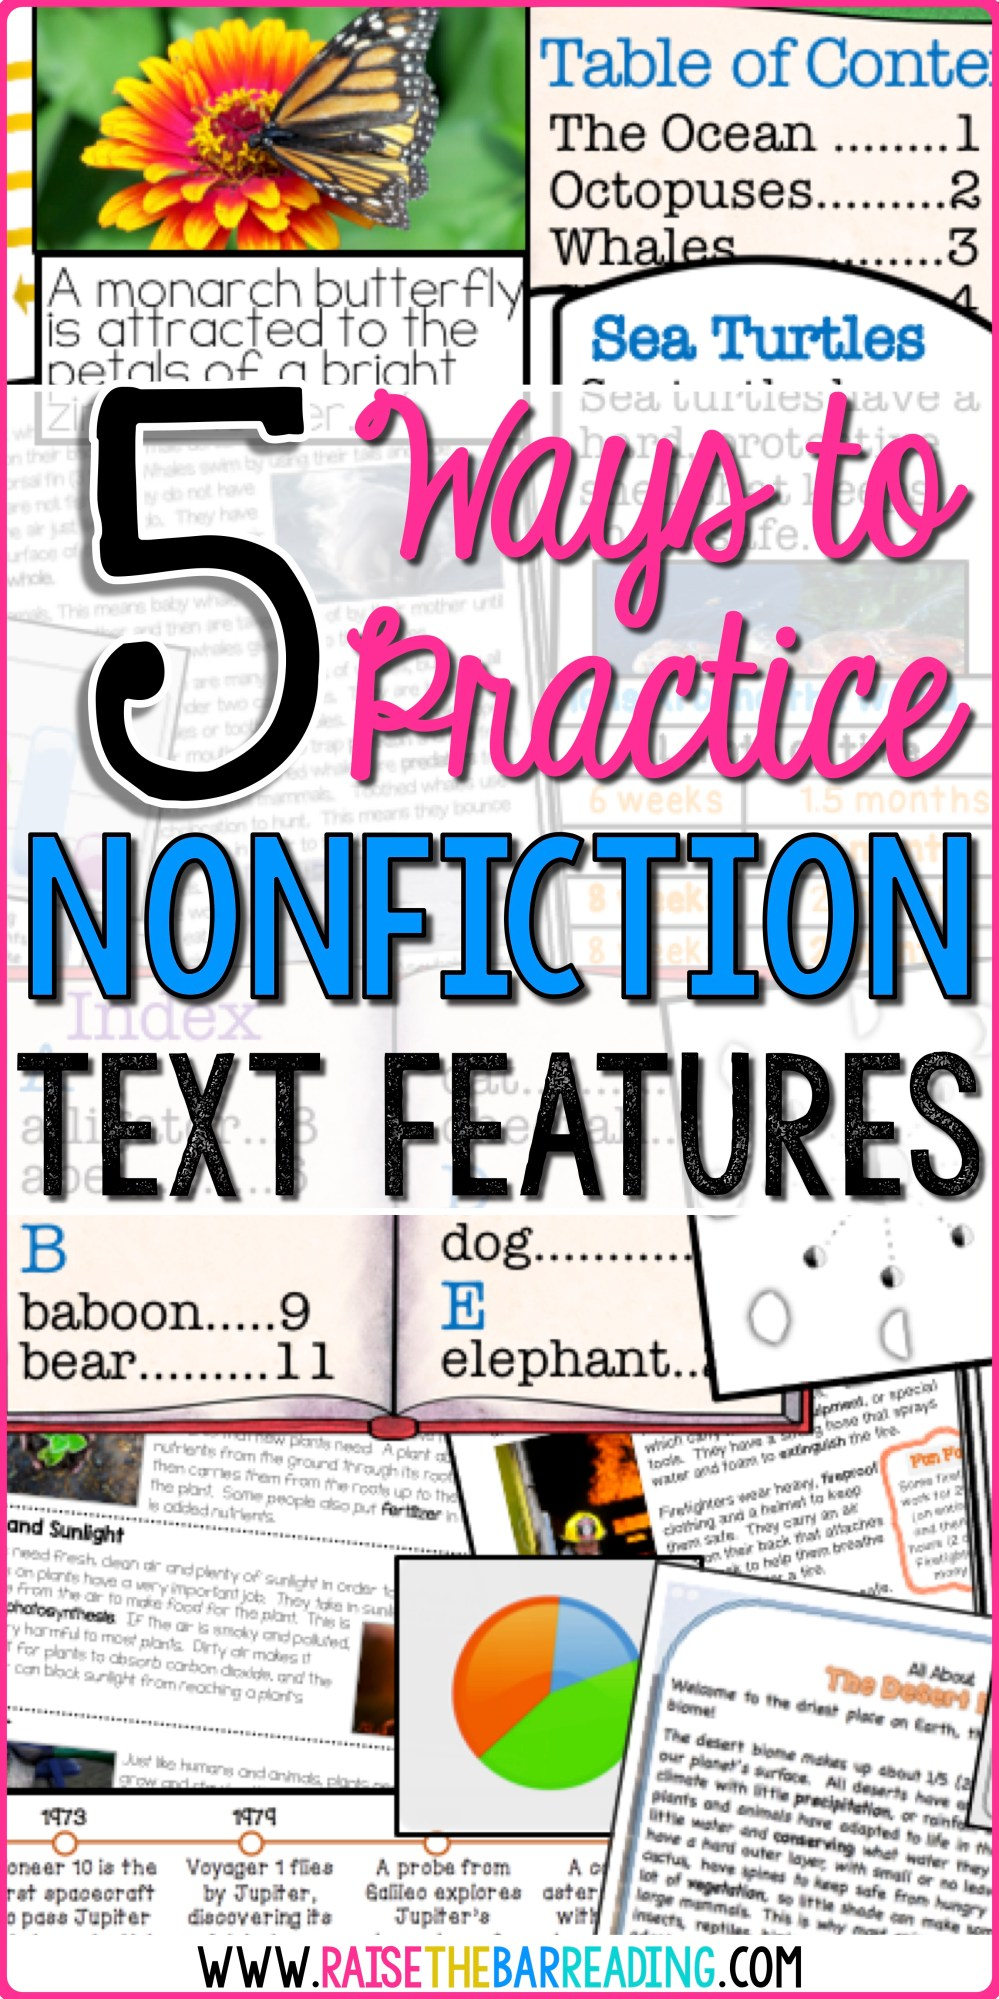 medium resolution of 5 Ways to Practice Nonfiction Text Features - Raise the Bar Reading